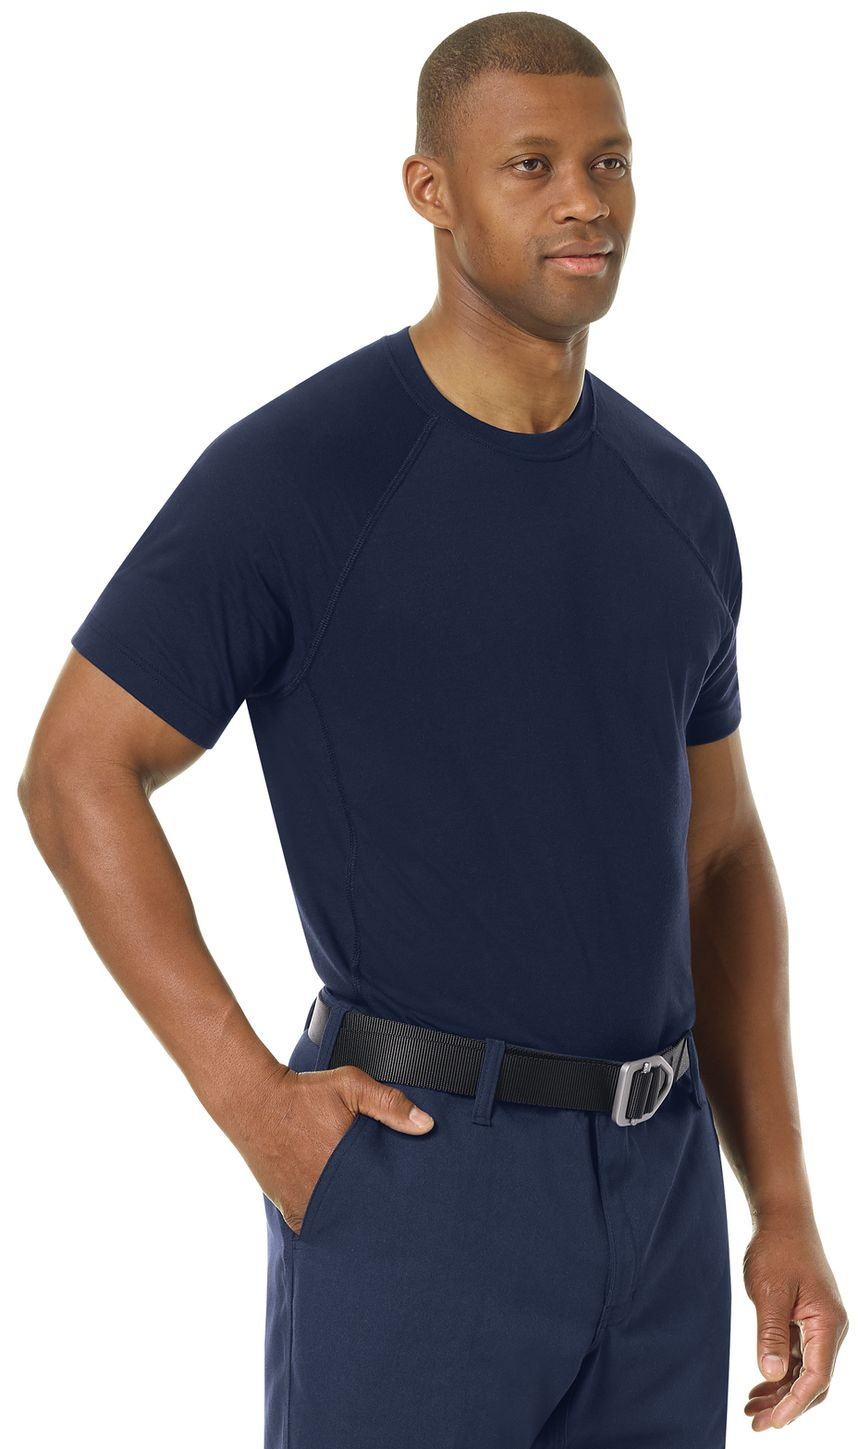 bulwark-fr-station-wear-tee-ft36-base-layer-athletic-style-navy-example-right.jpg